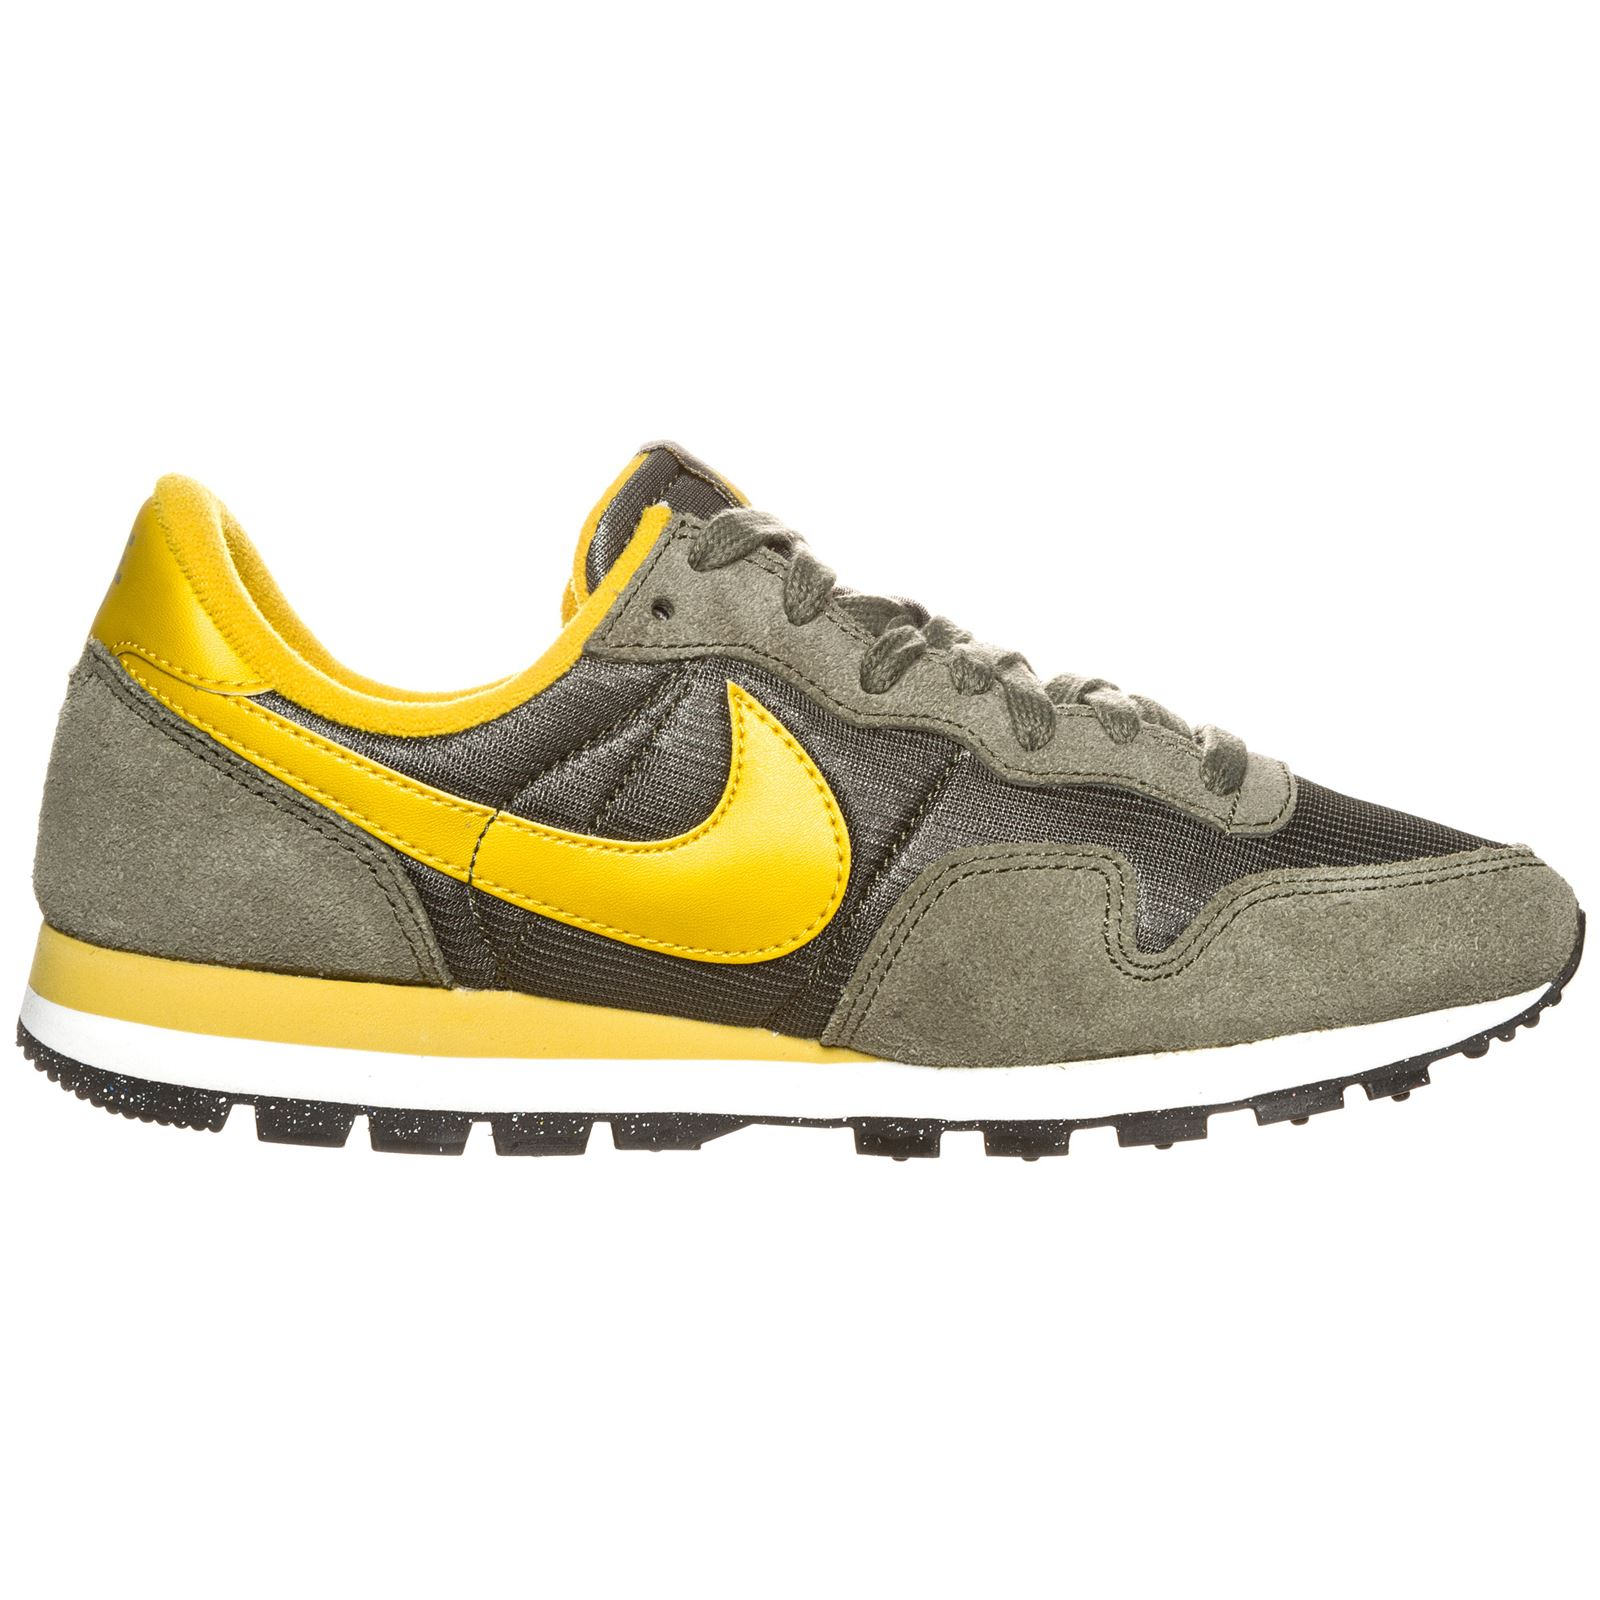 nike air pegasus 83 green womens trainers 407477 304 ebay. Black Bedroom Furniture Sets. Home Design Ideas